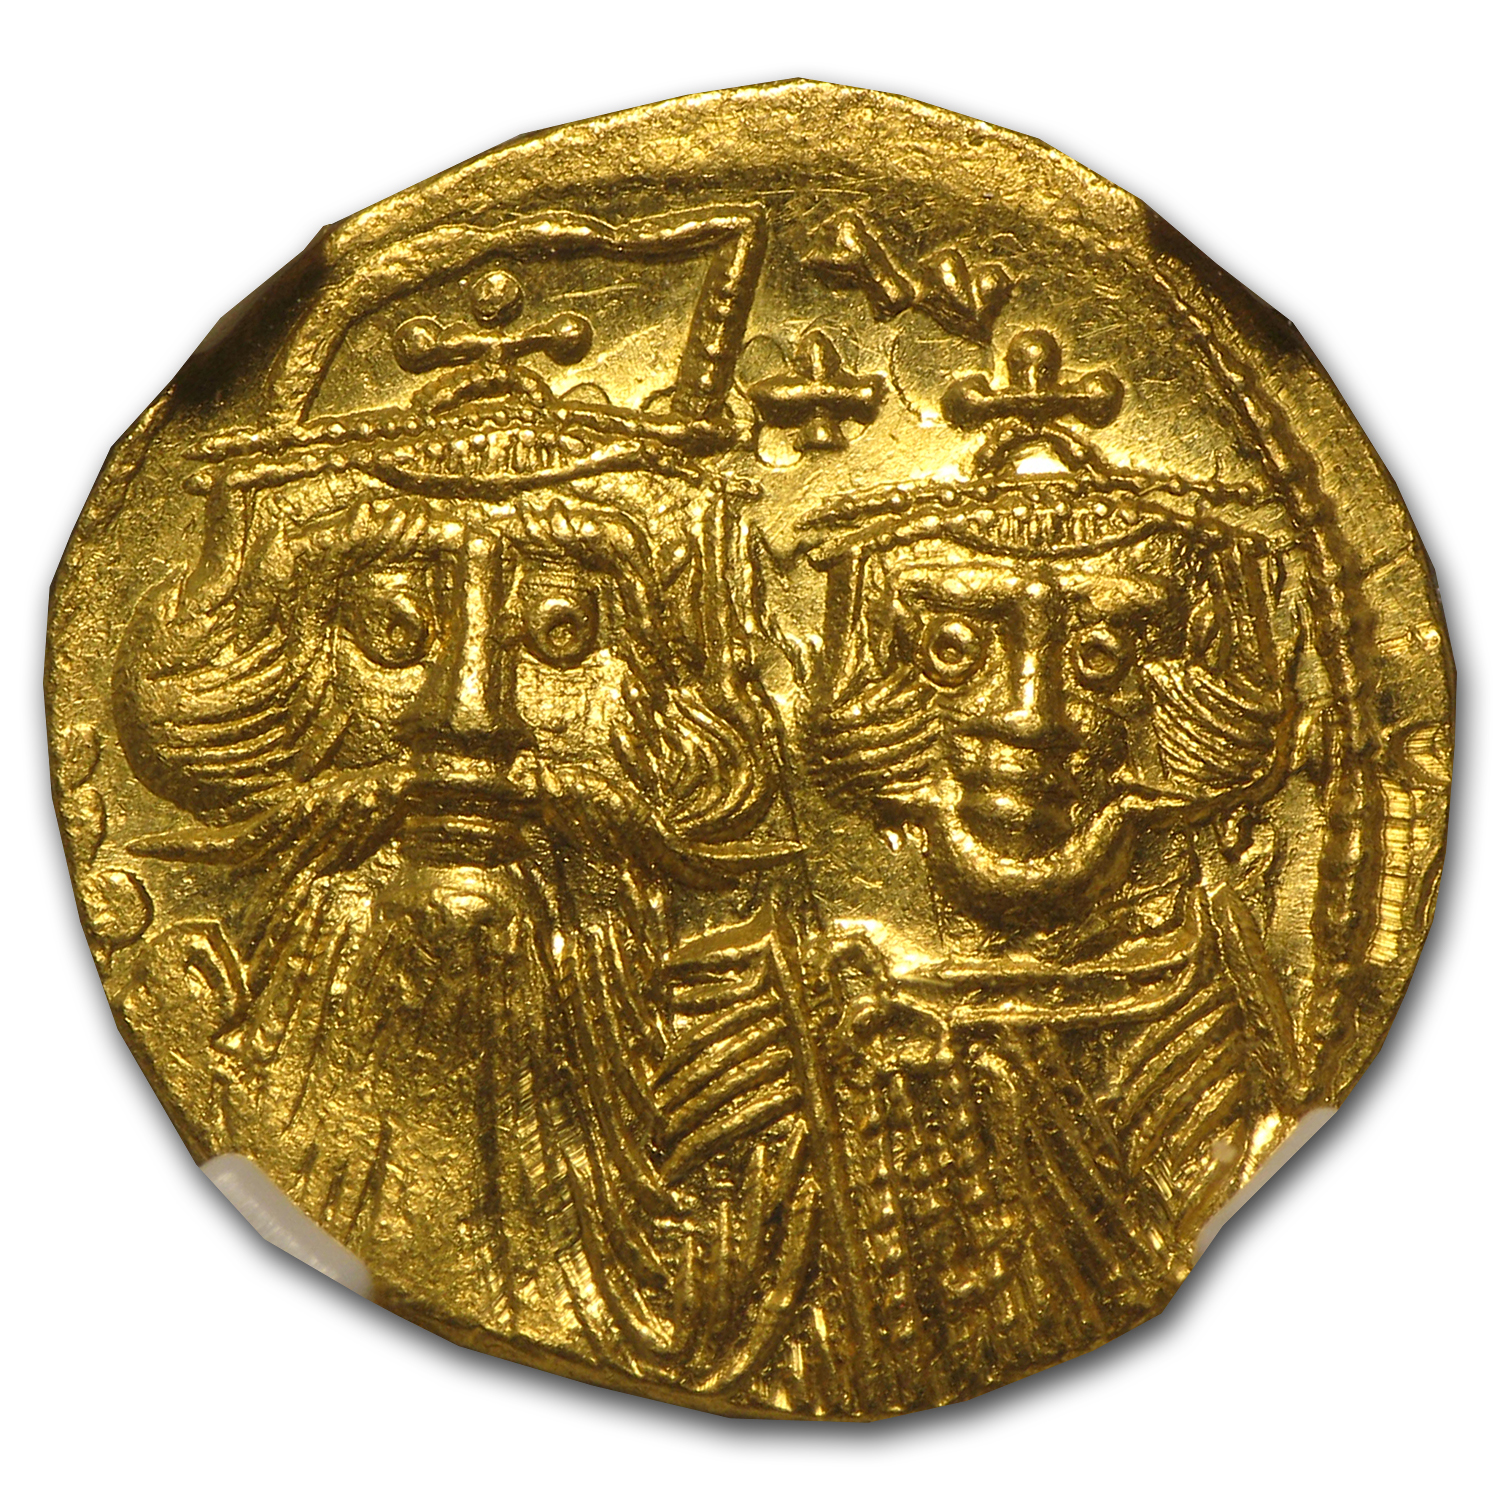 Byzantine Gold Constans II, Constant. IV MS NGC (641-668 AD)